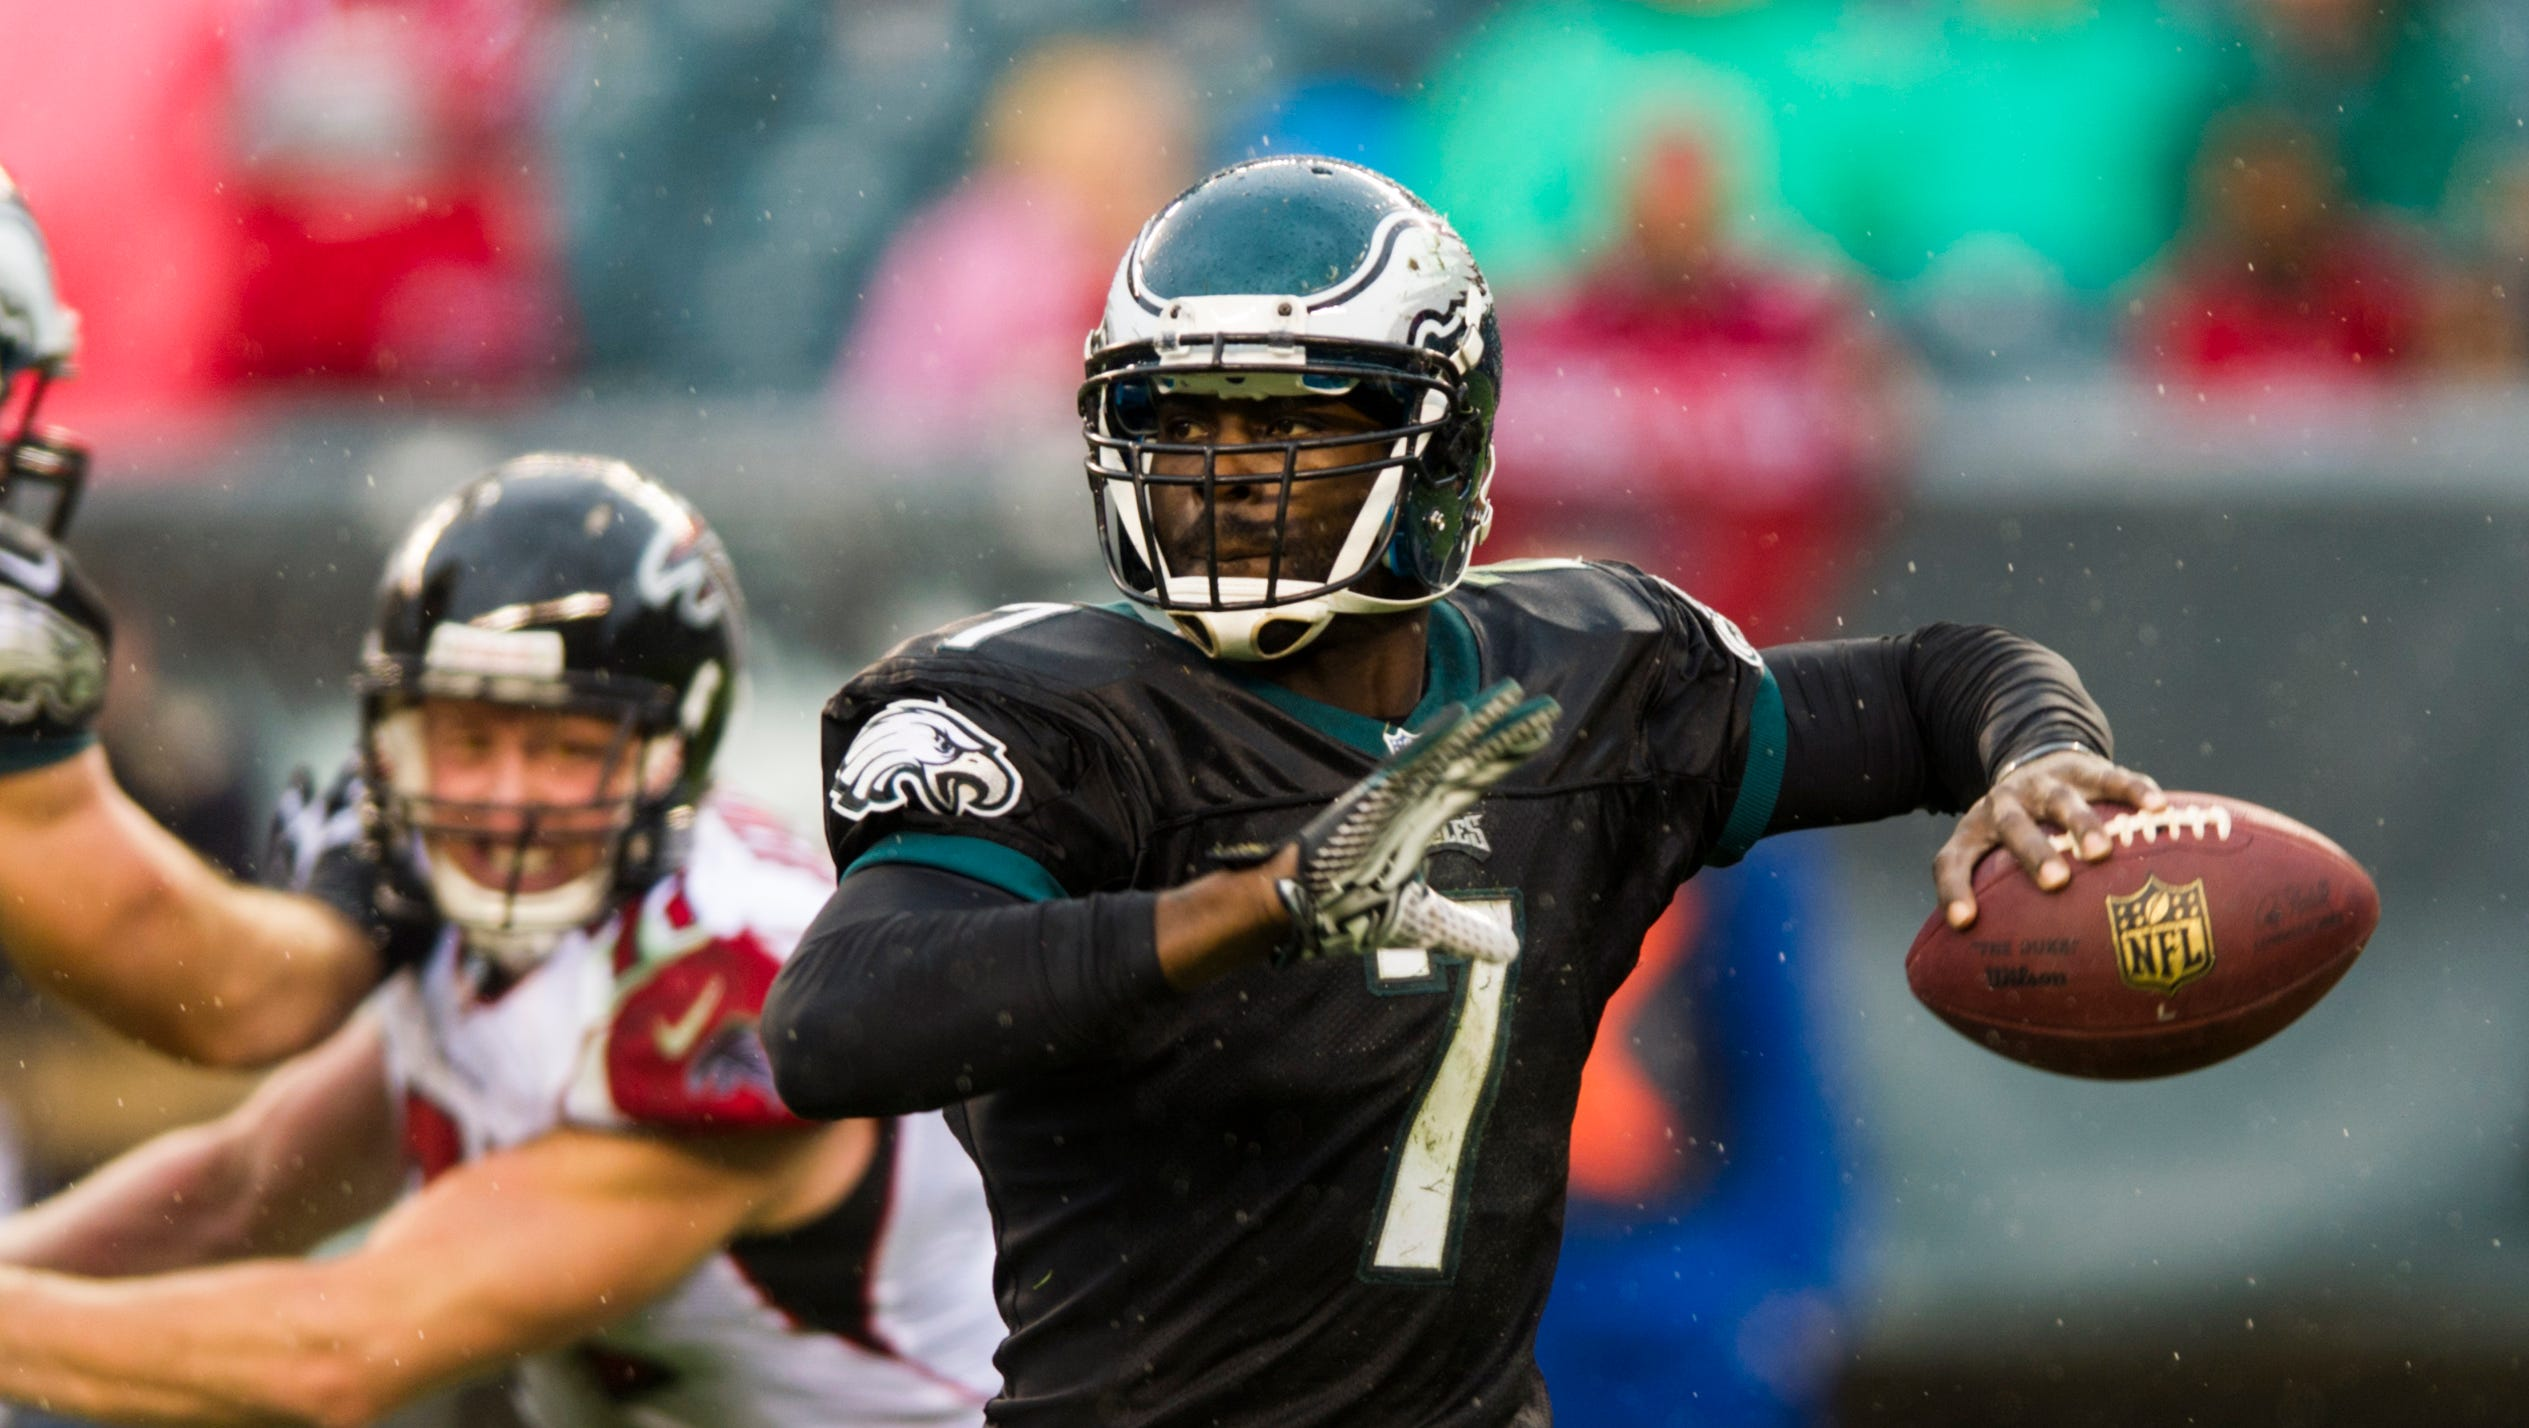 15. Michael Vick, Philadelphia Eagles